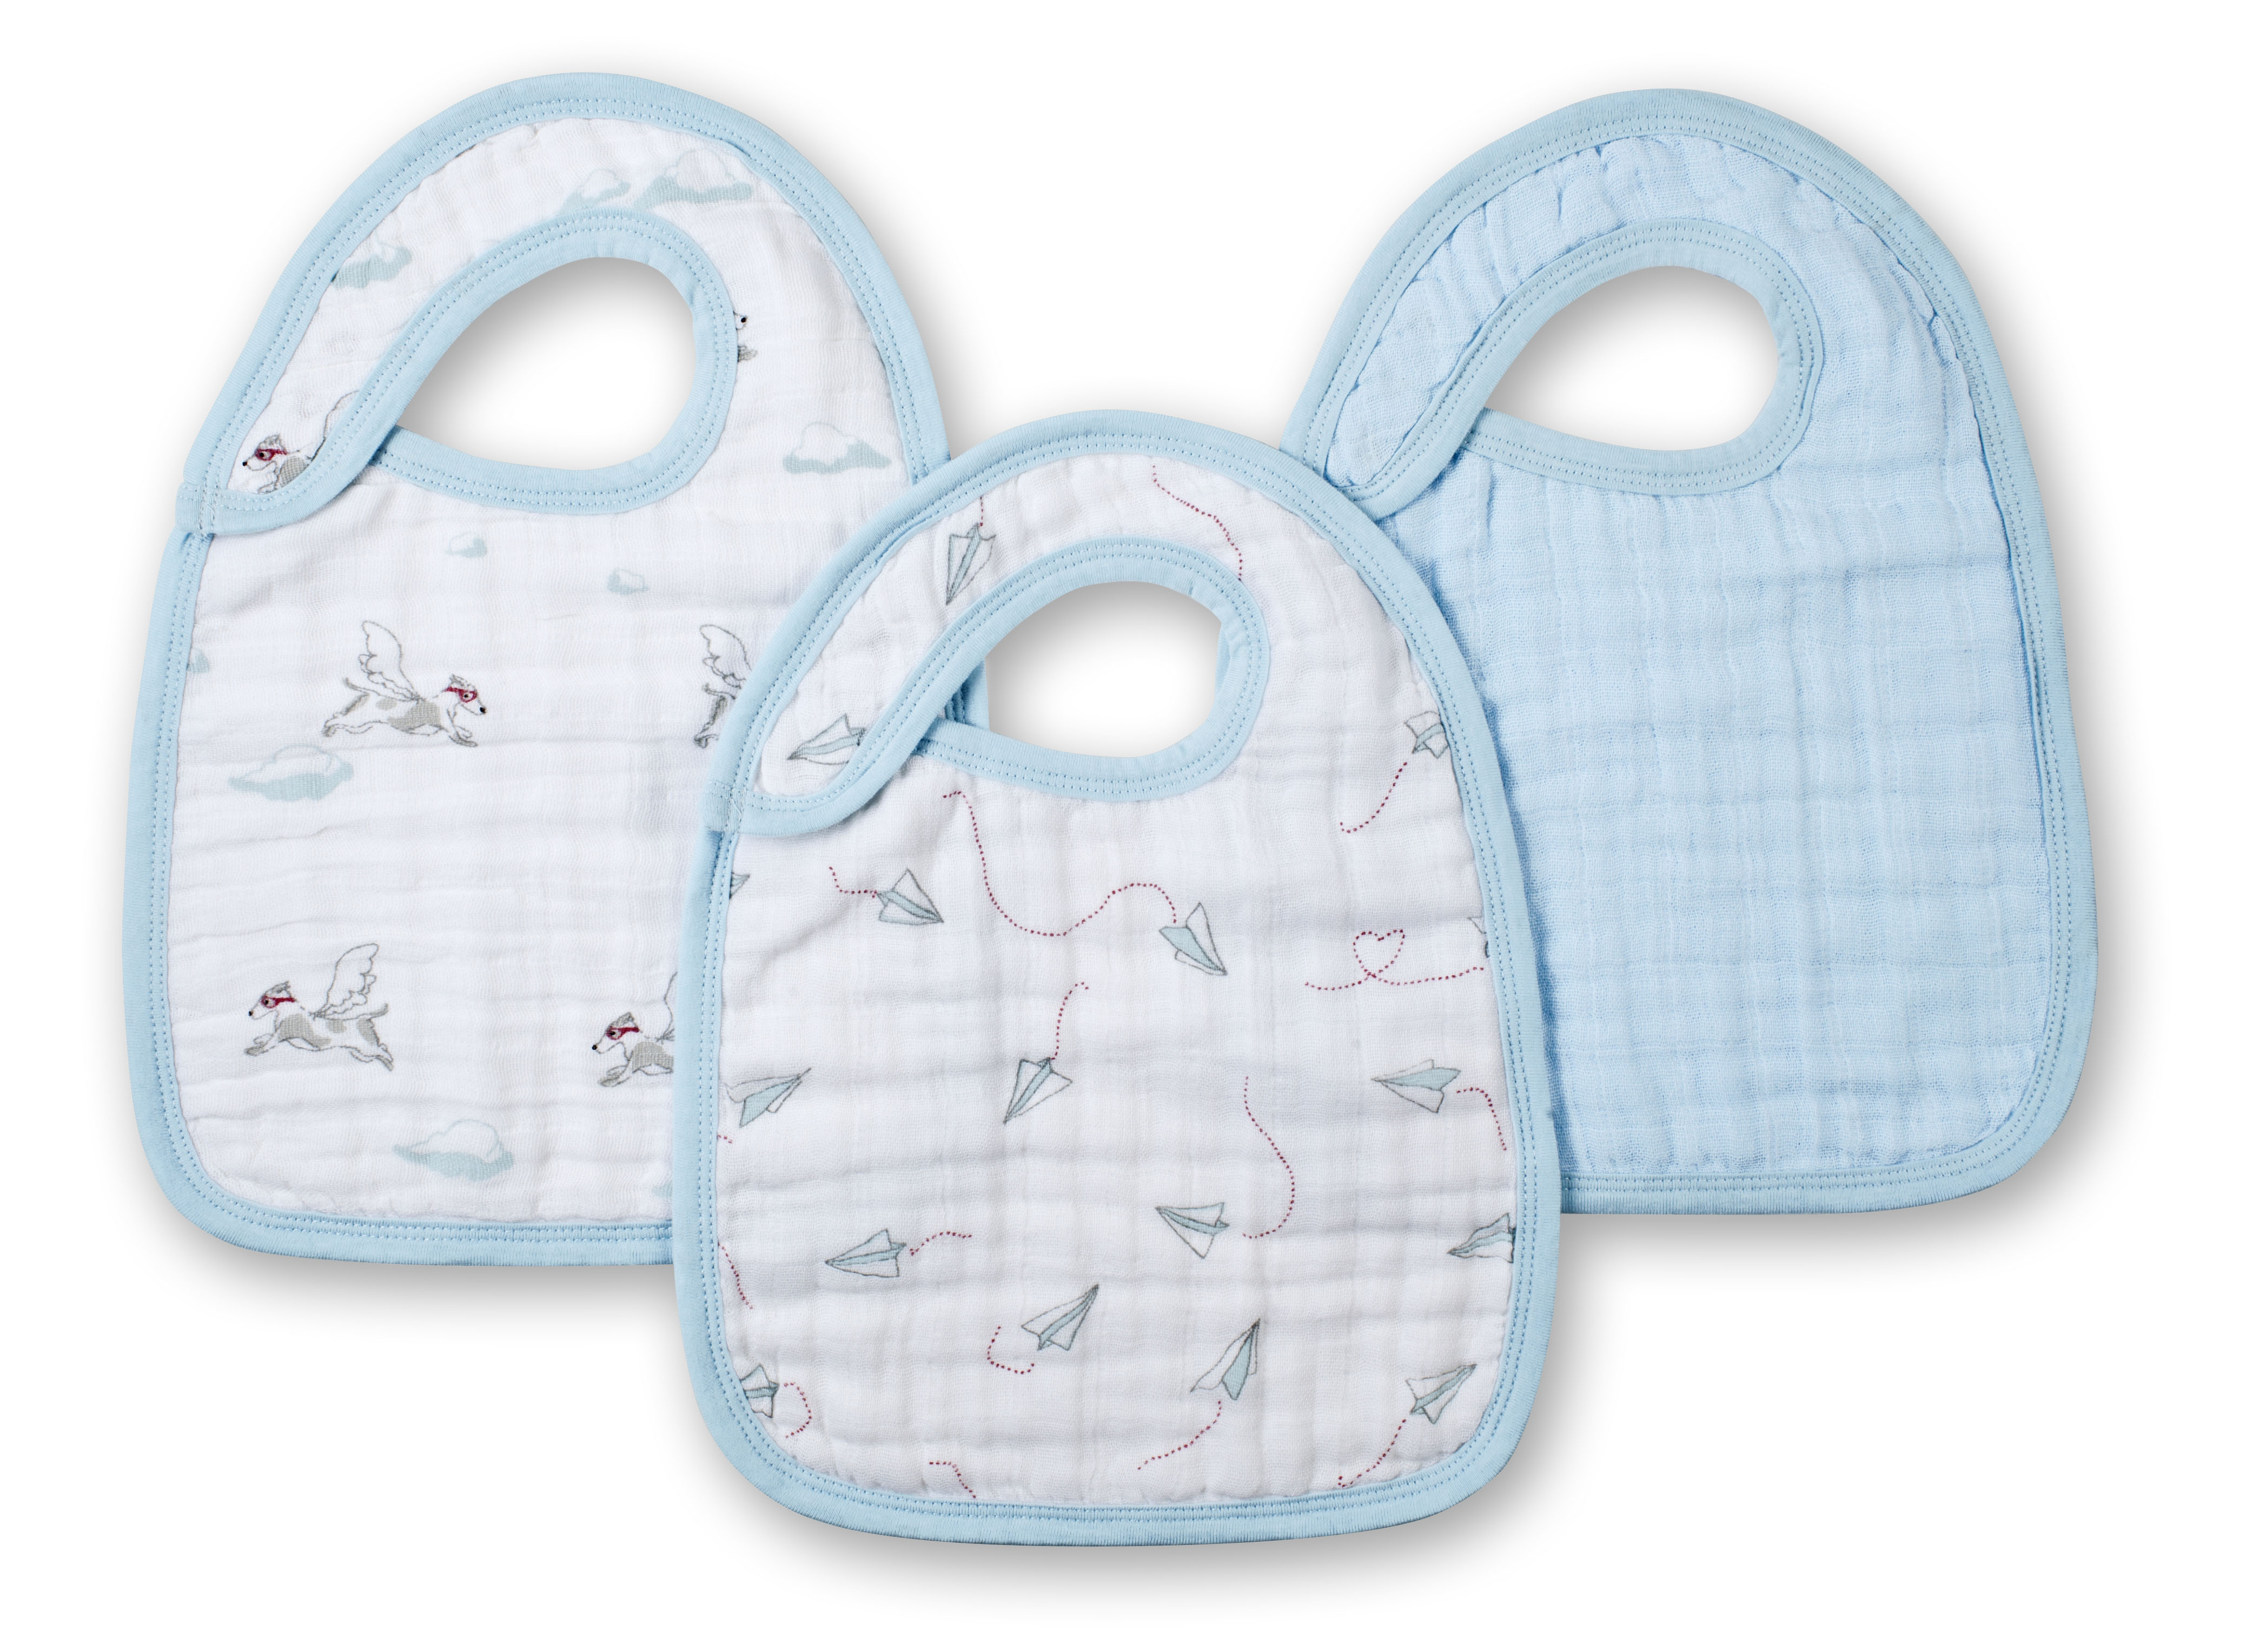 aden and anais snap bibs - liam the brave